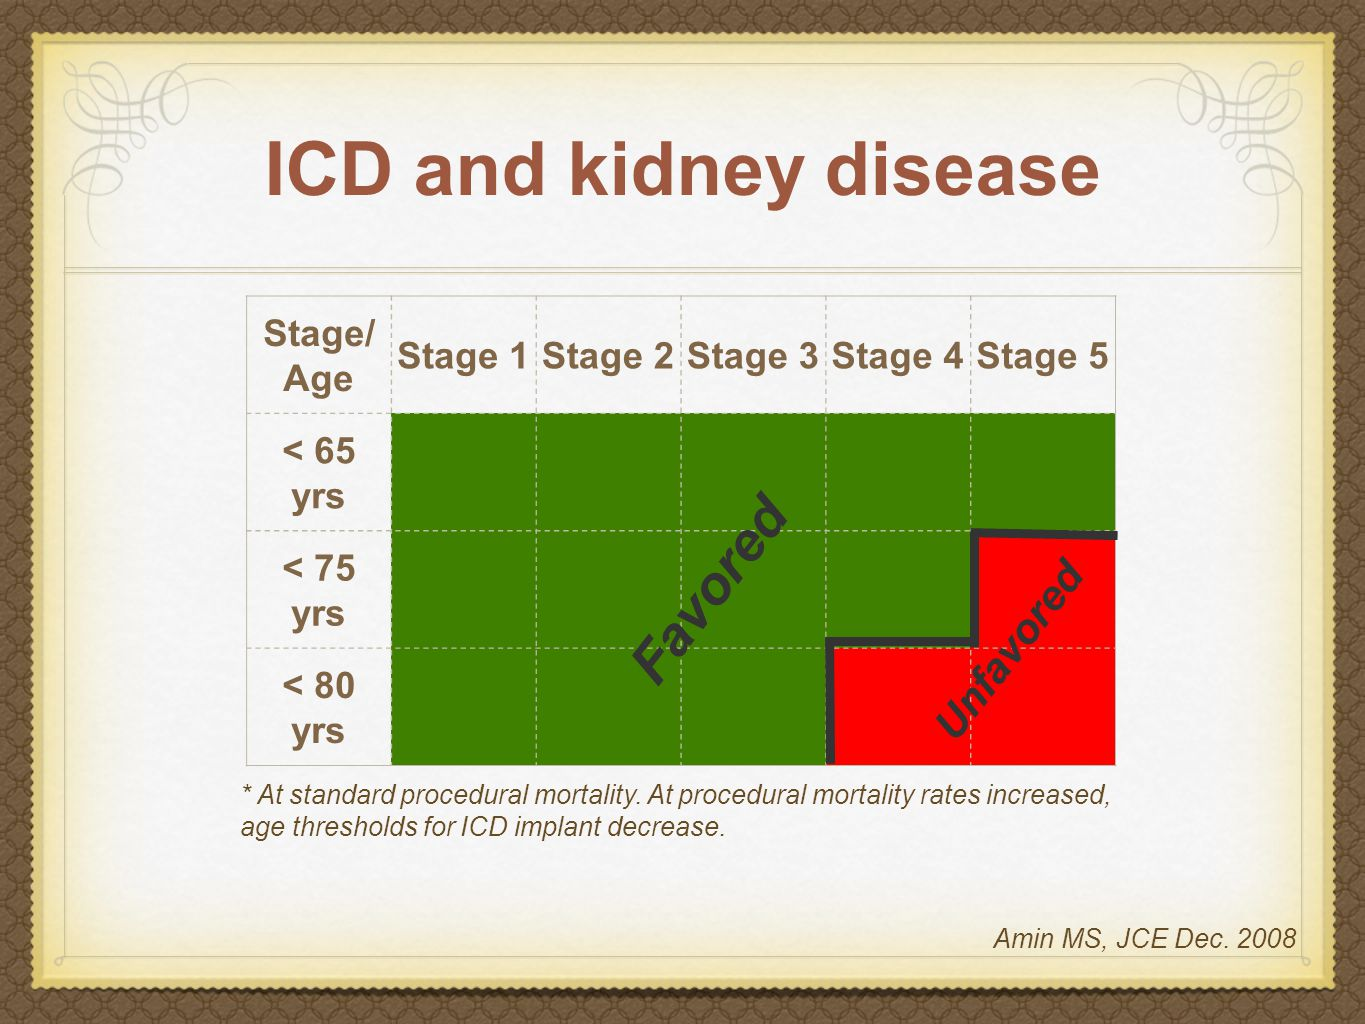 ICD and kidney disease Stage/ Age Stage 1Stage 2Stage 3Stage 4Stage 5 < 65 yrs < 75 yrs < 80 yrs Favored Unfavored * At standard procedural mortality.